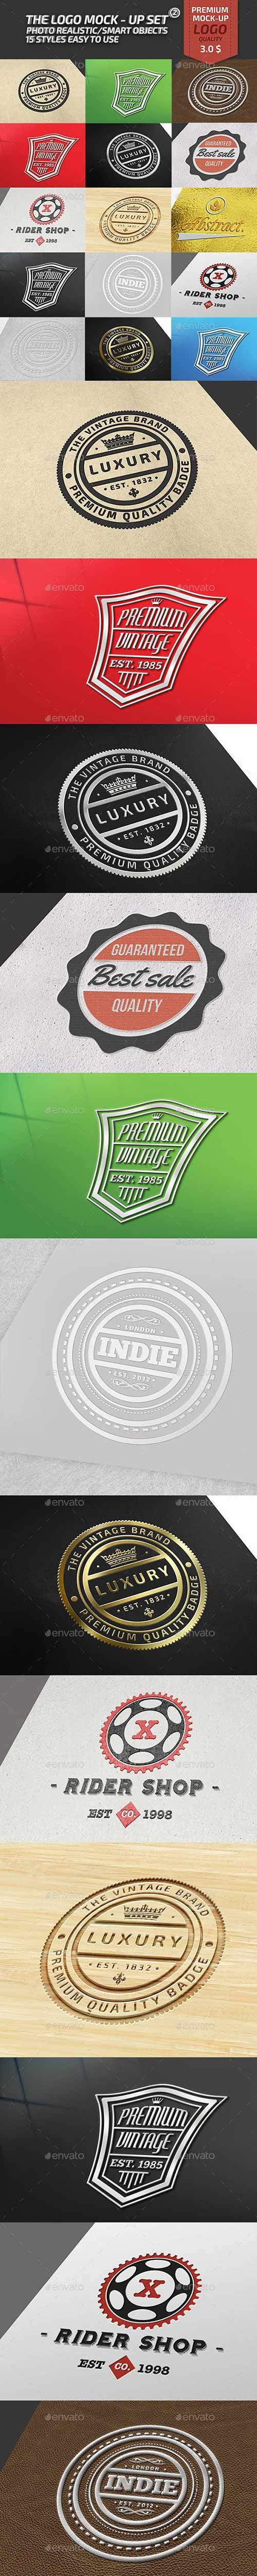 Graphicriver - The Logo Mock-Up Set 2 17965979